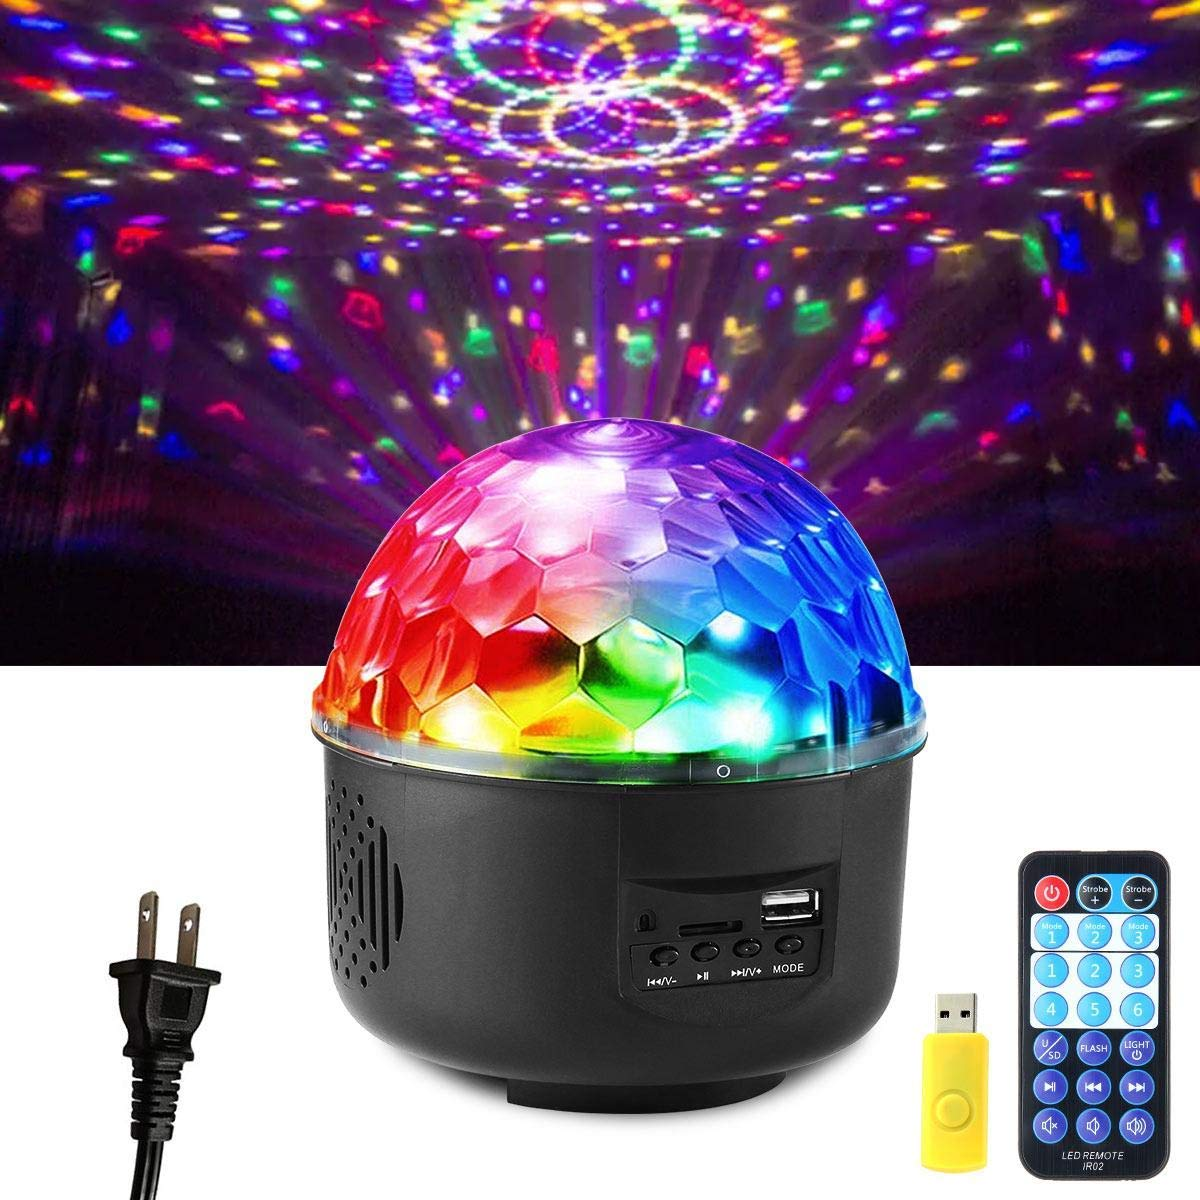 Leegoal DJ Lights, Sound Activated Party Lights Rotating Crystal Magic Ball Light Strobe Lamp 6 Modes Stage Par Light with Remove Control MP3 Play and USB for Disco, Home, Party, Birthday